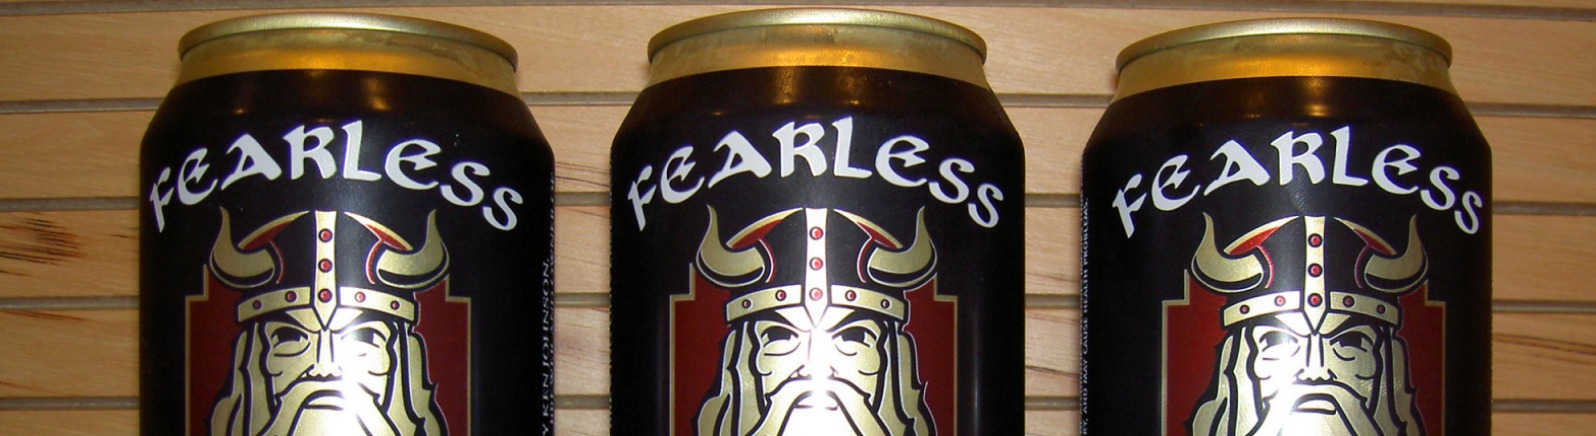 Fearless Brewing distributes its Scottish Ale in tall black cans lined up face forward.